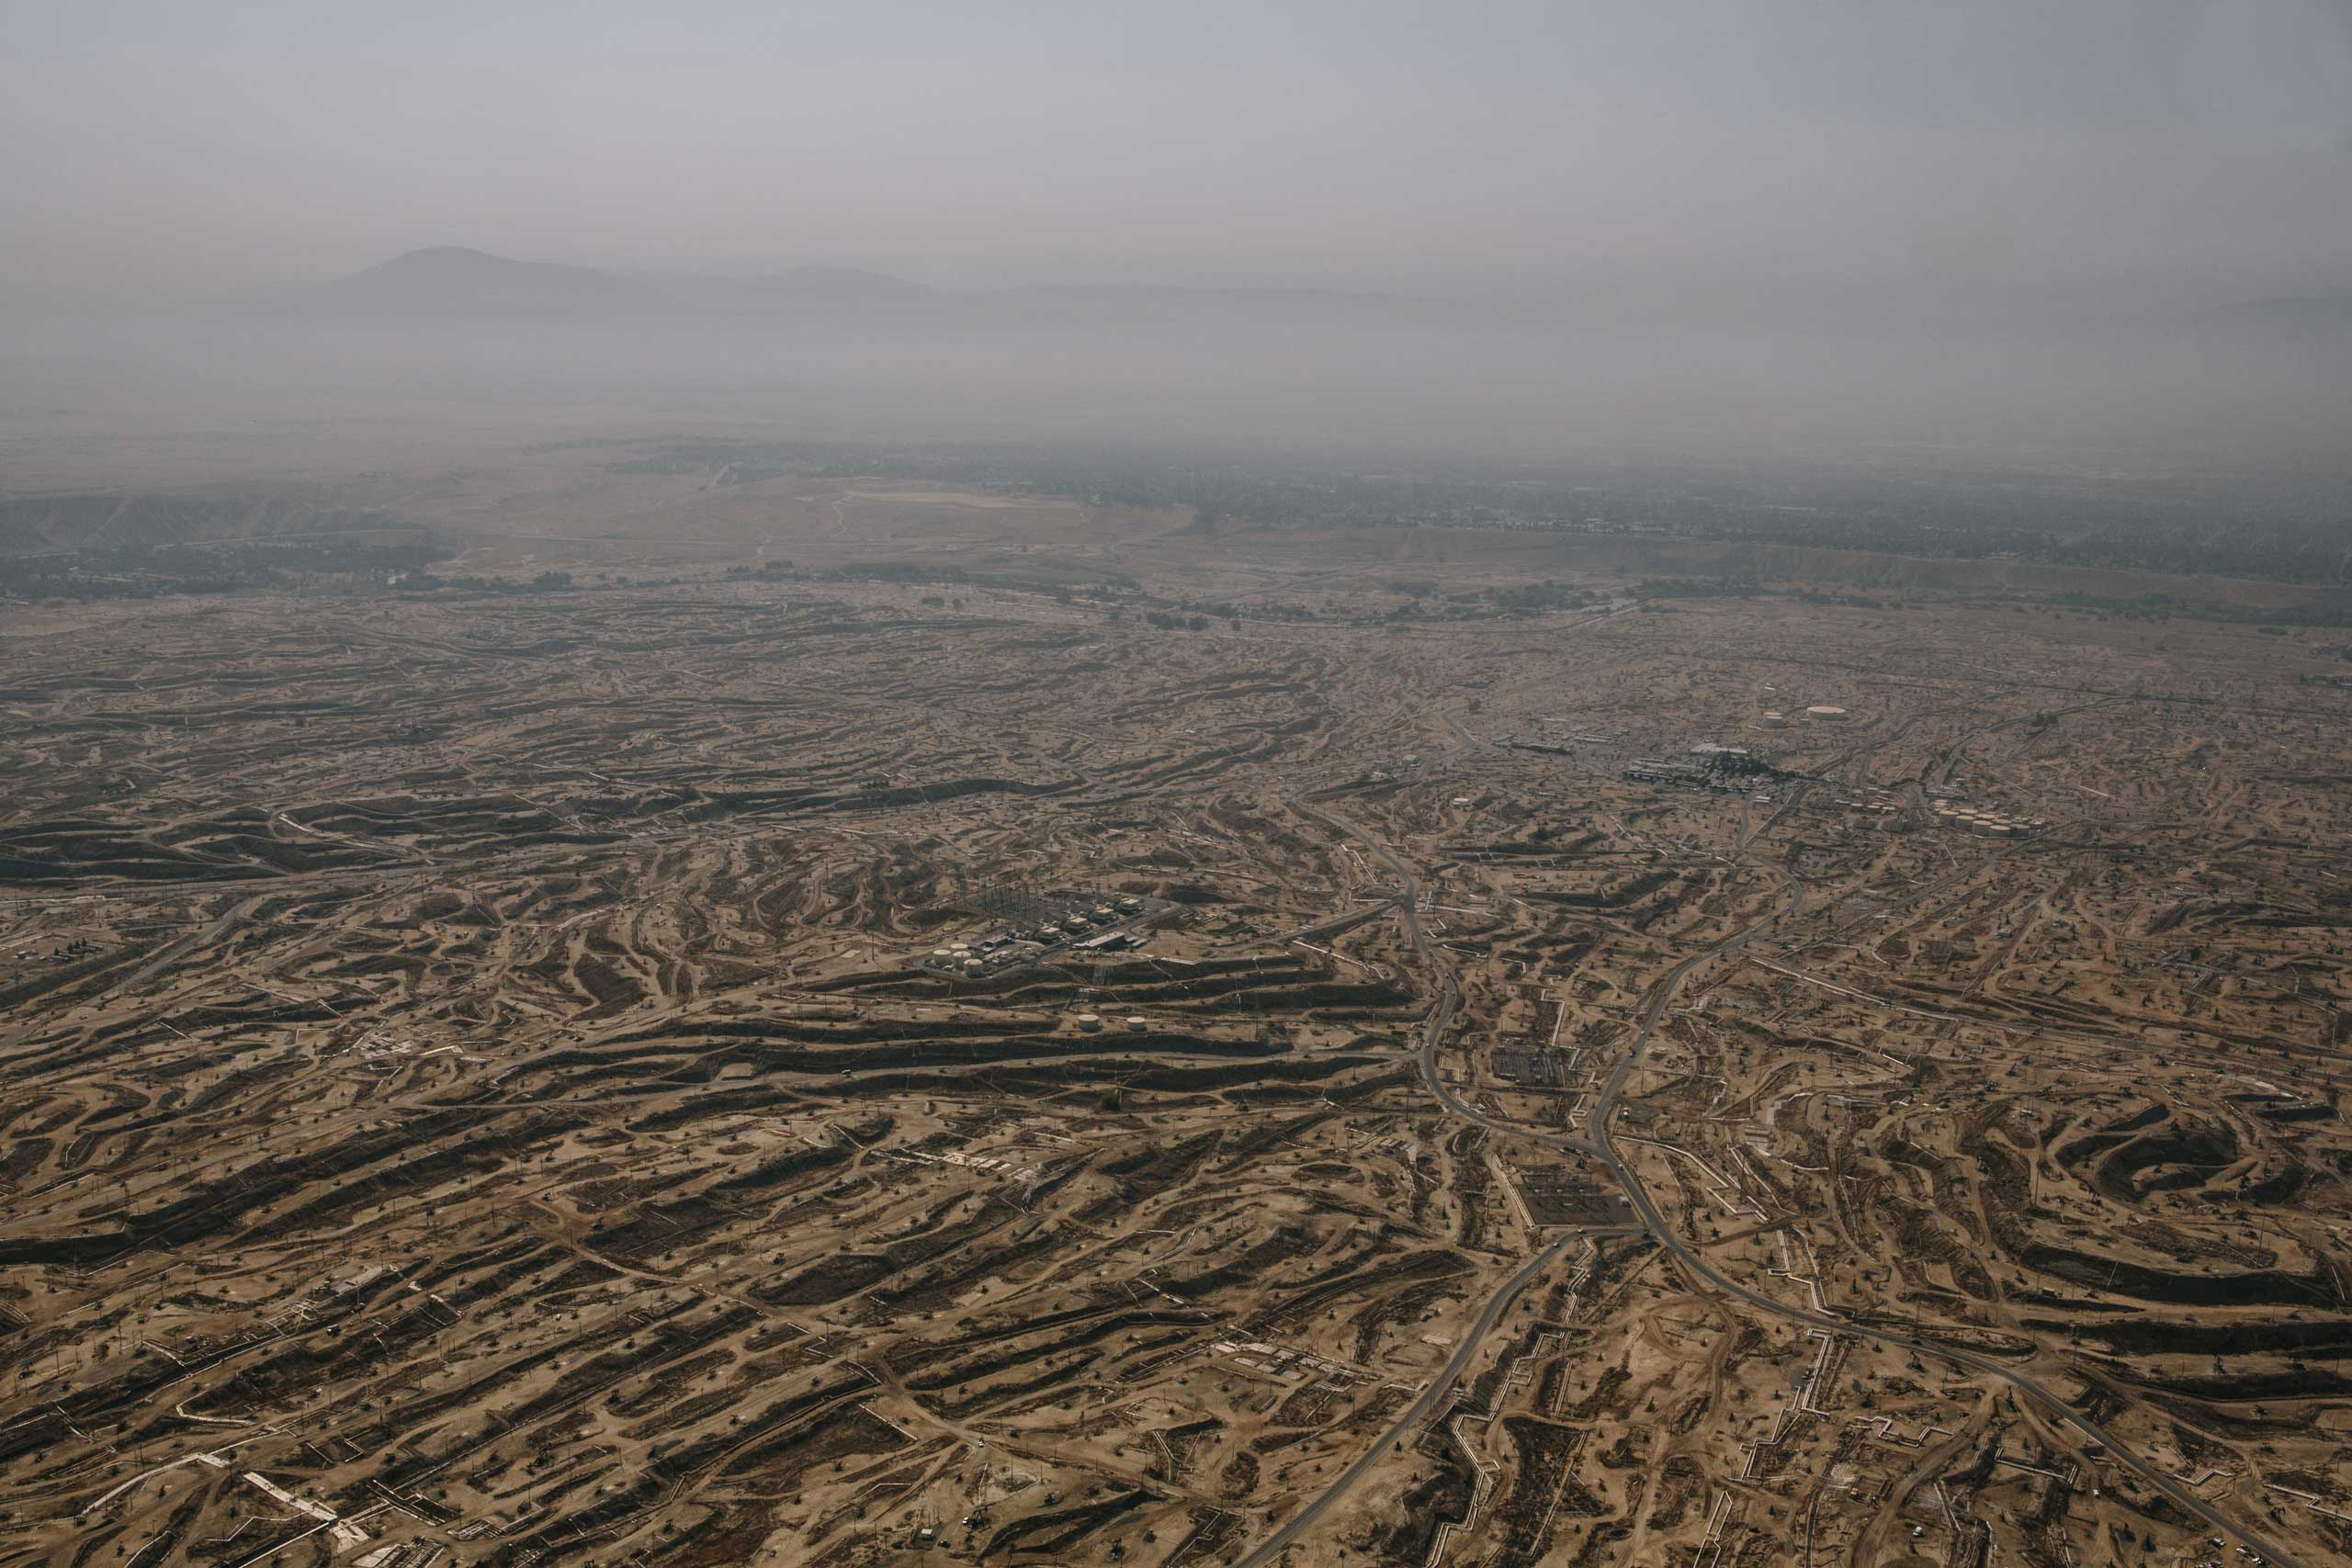 Oil pumps and scarred earth can be seen for miles in an area of North Bakersfield called the Bluffs. A Cogeneration Plant sits in the middle of the fields and is one of California's top polluters.